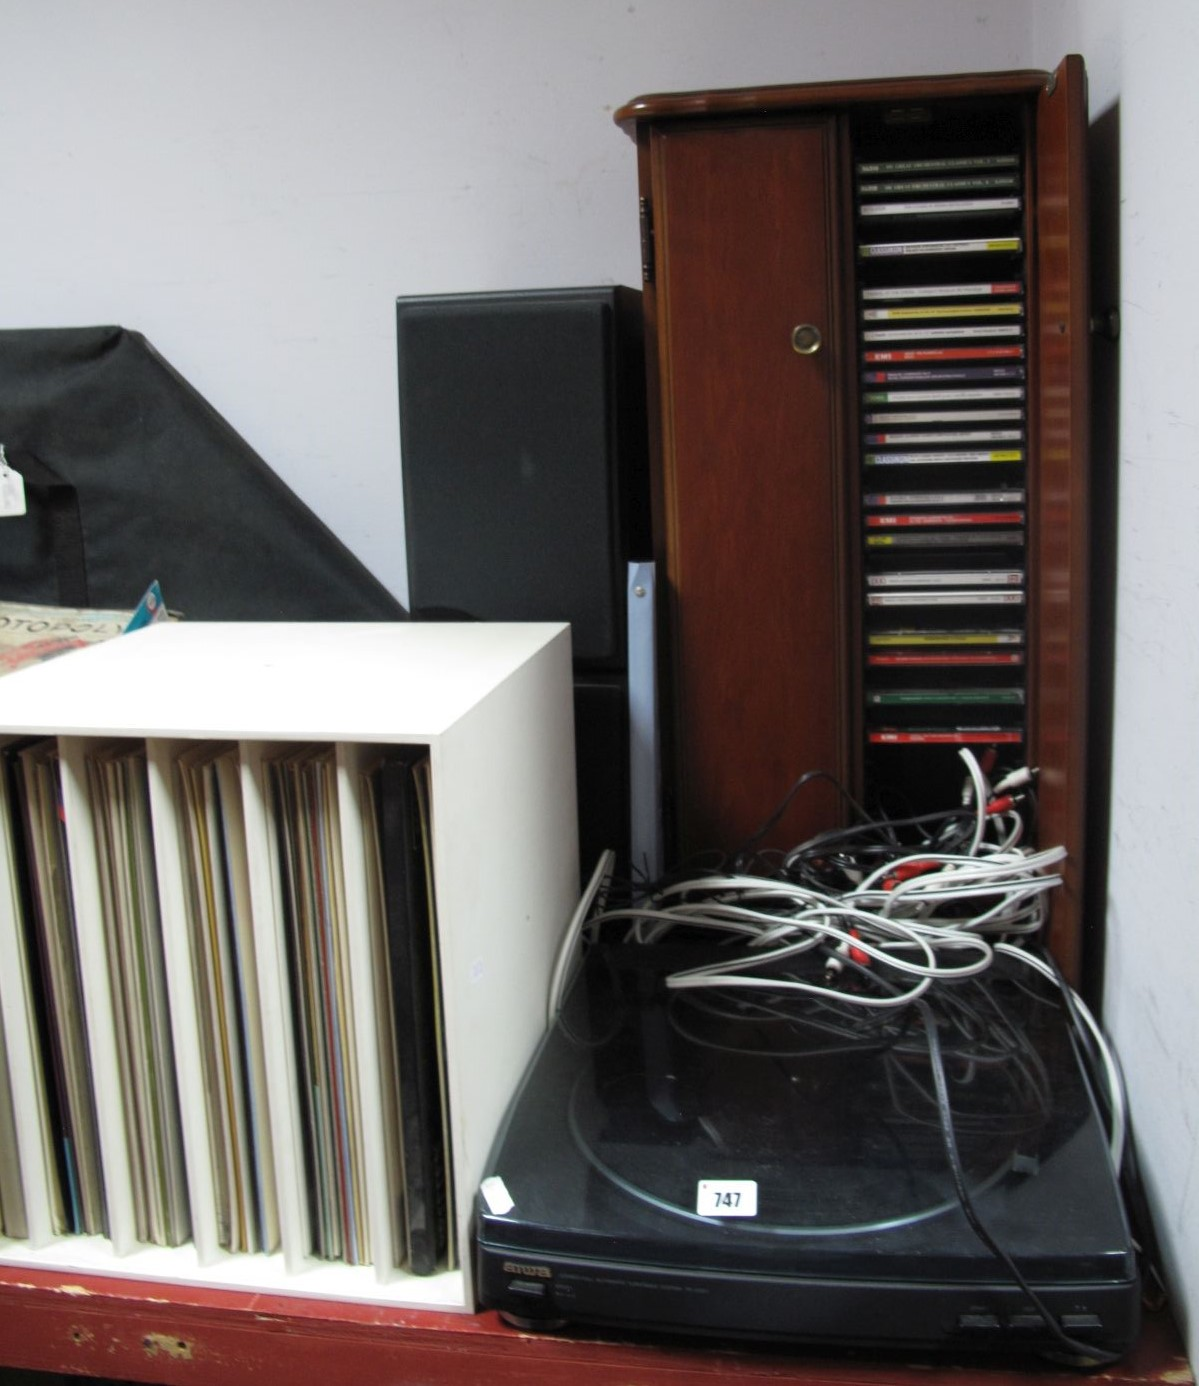 Lot 747 - A Quantity of CD's, in cabinet, Aiwa record player and many records.